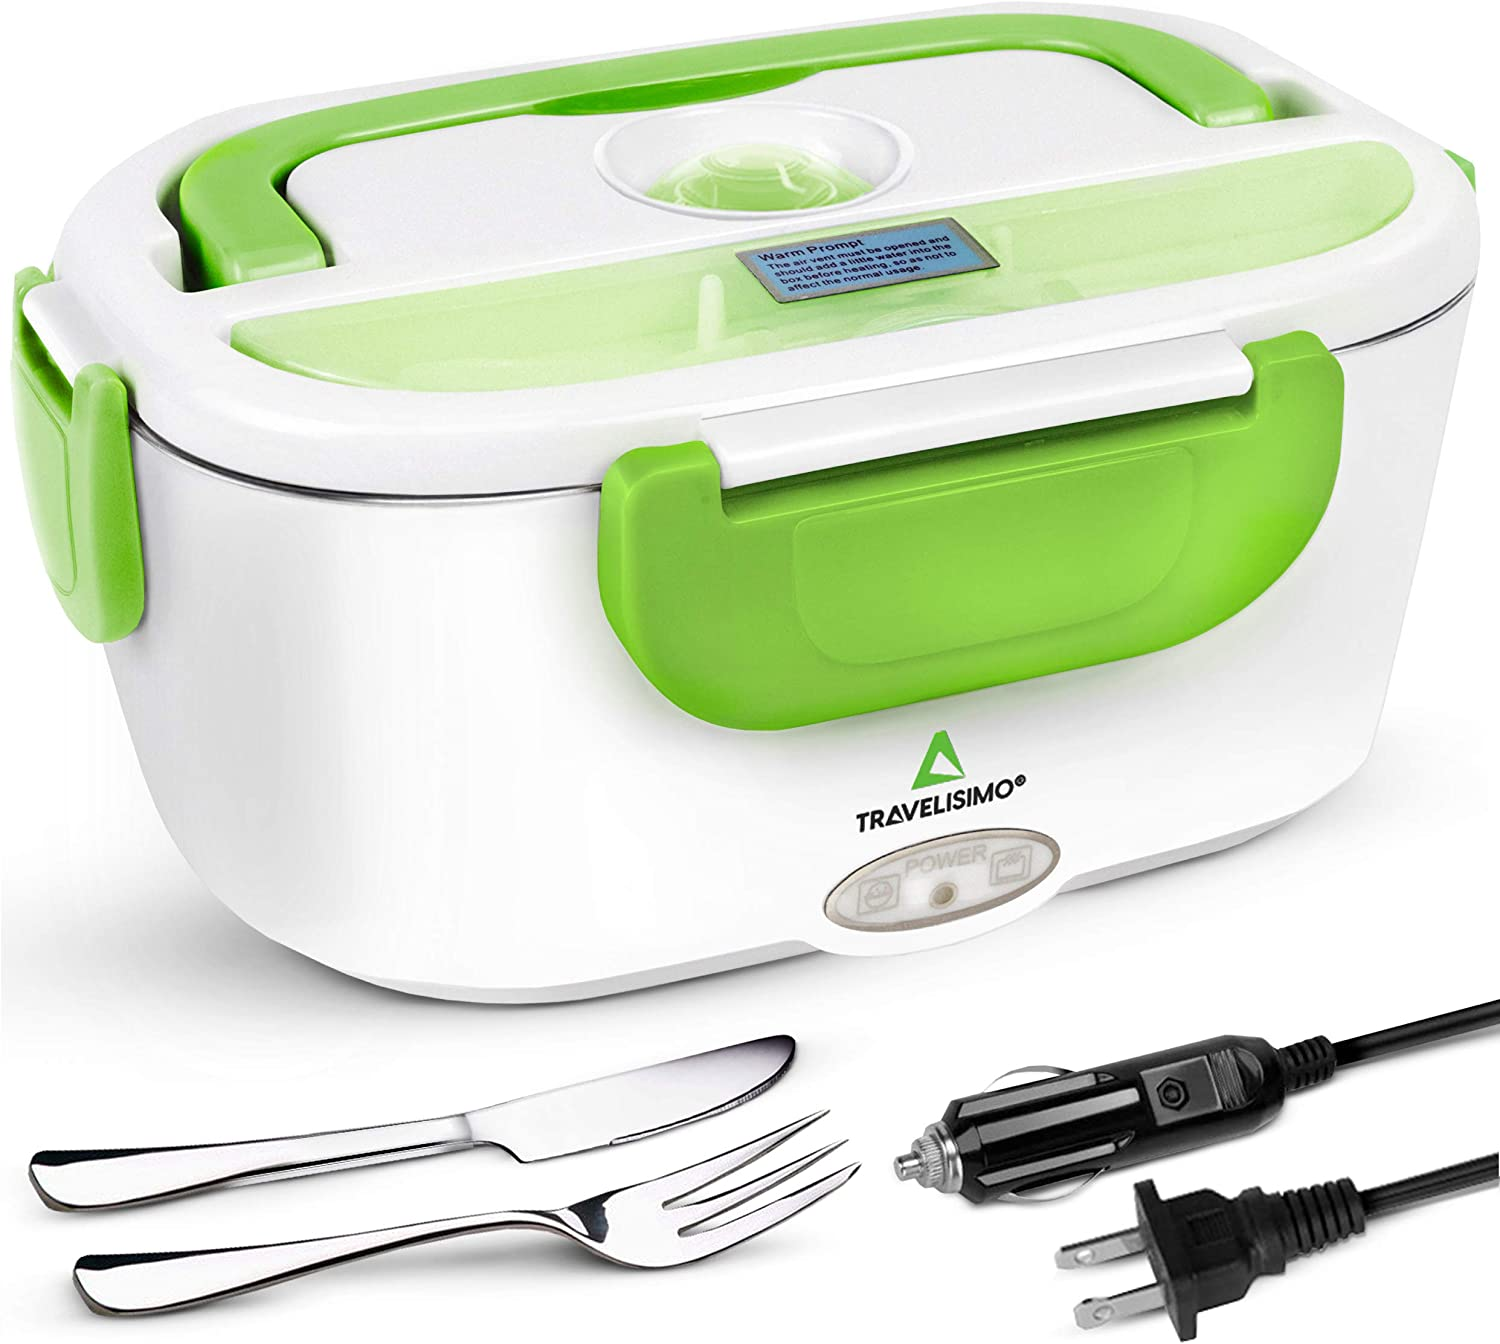 TRAVELISIMO Electric Lunch Box 2 in 1 - Portable Food Warmer for Car, Truck, Home and Work 12V & 110V 40W - Includes 2 Compartments, Removable Stainless Steel Food Heater Container (Green)